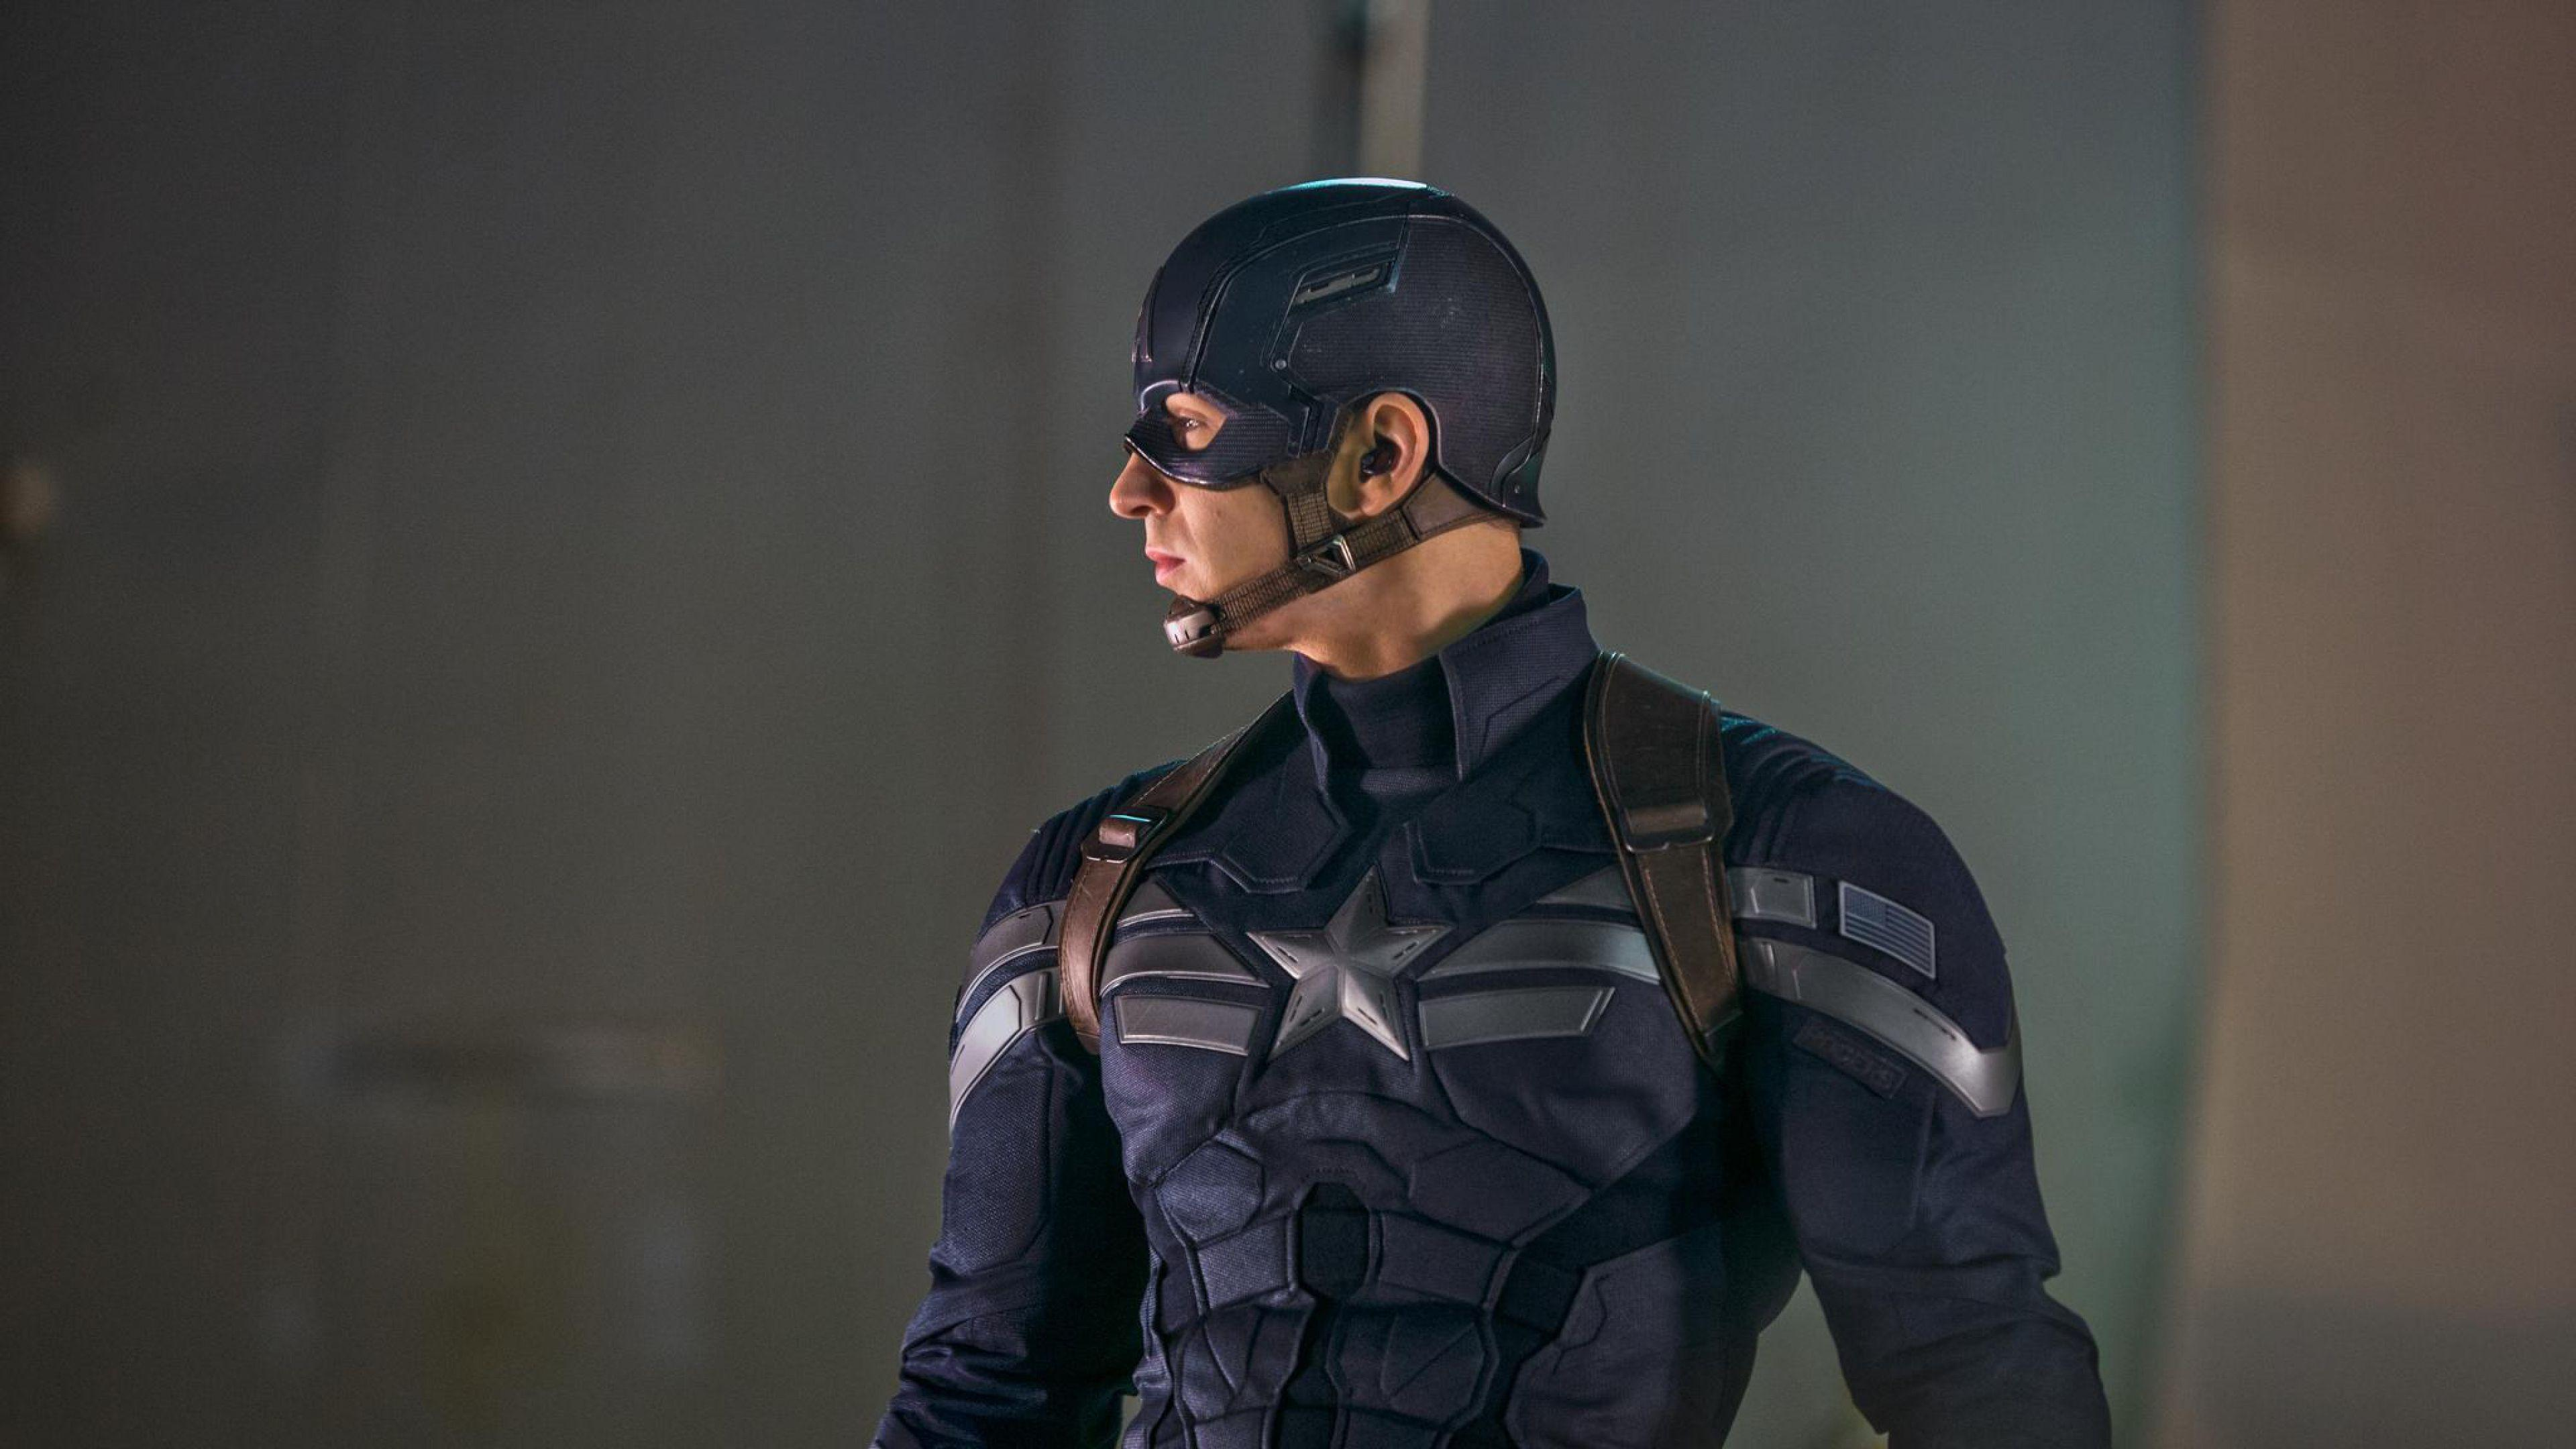 4K Ultra HD Captain america the winter soldier Wallpapers HD